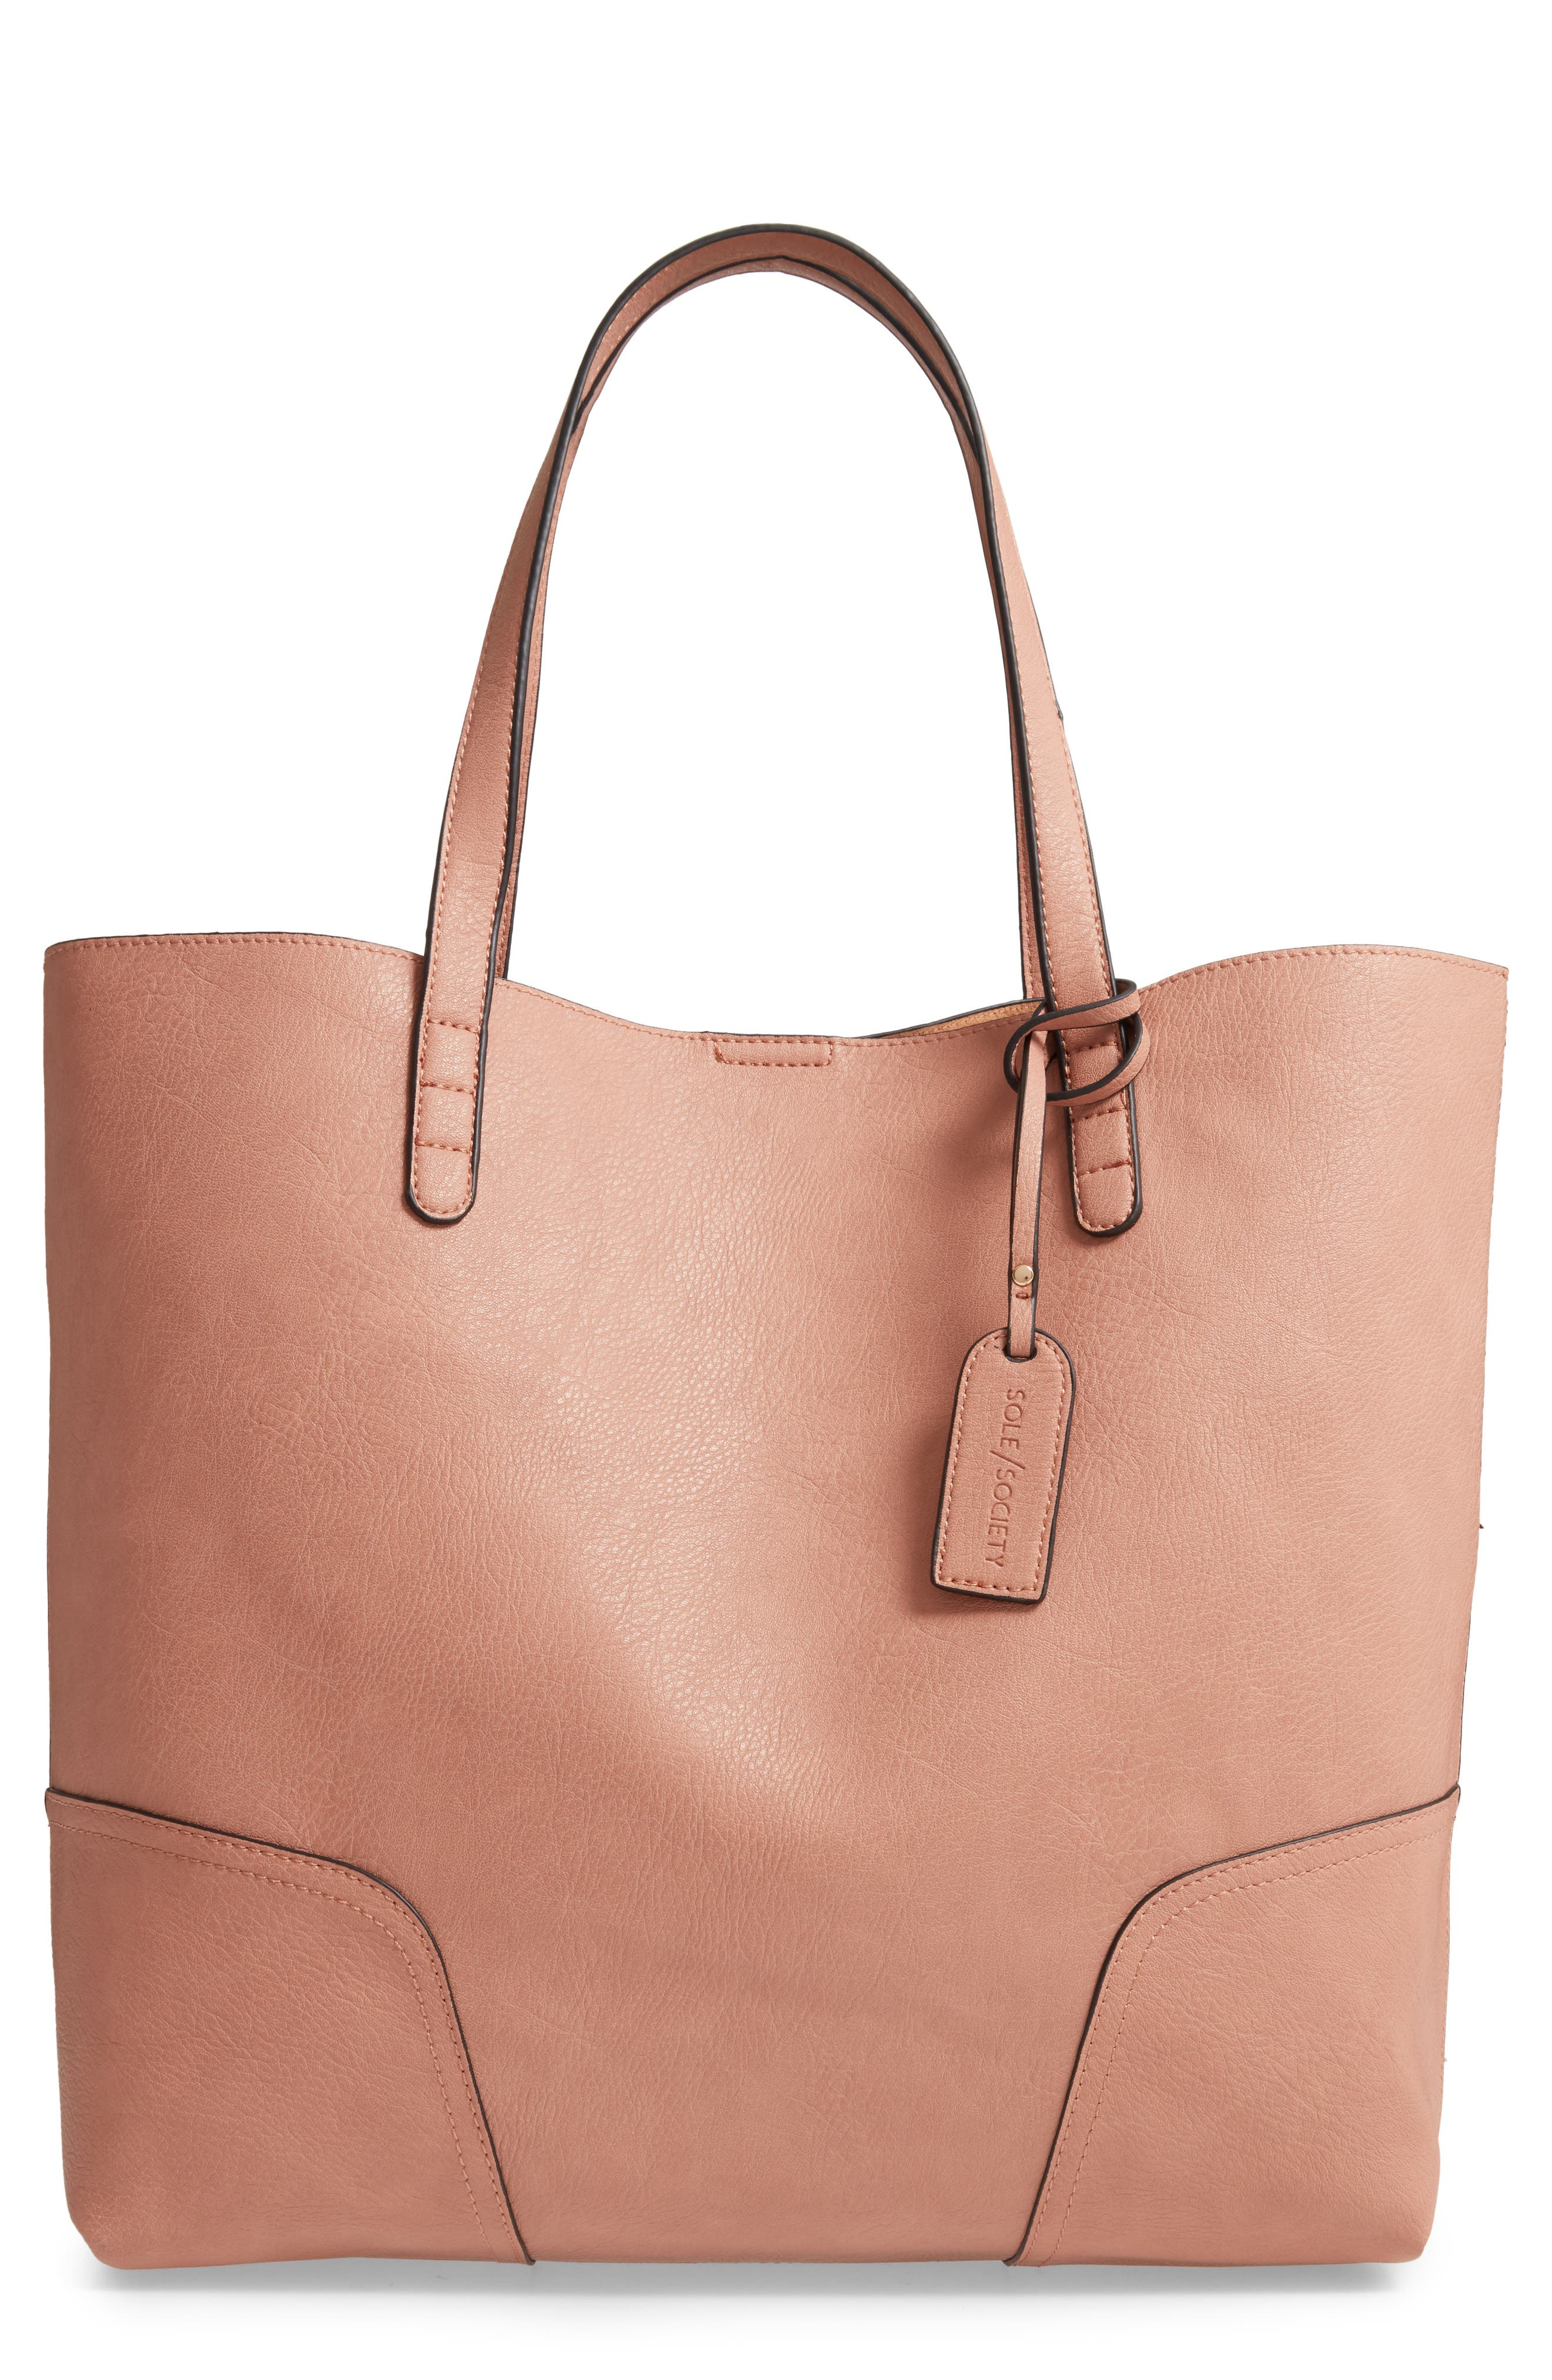 SOLE SOCIETY, Lilyn Faux Leather Tote, Main thumbnail 1, color, CANYON